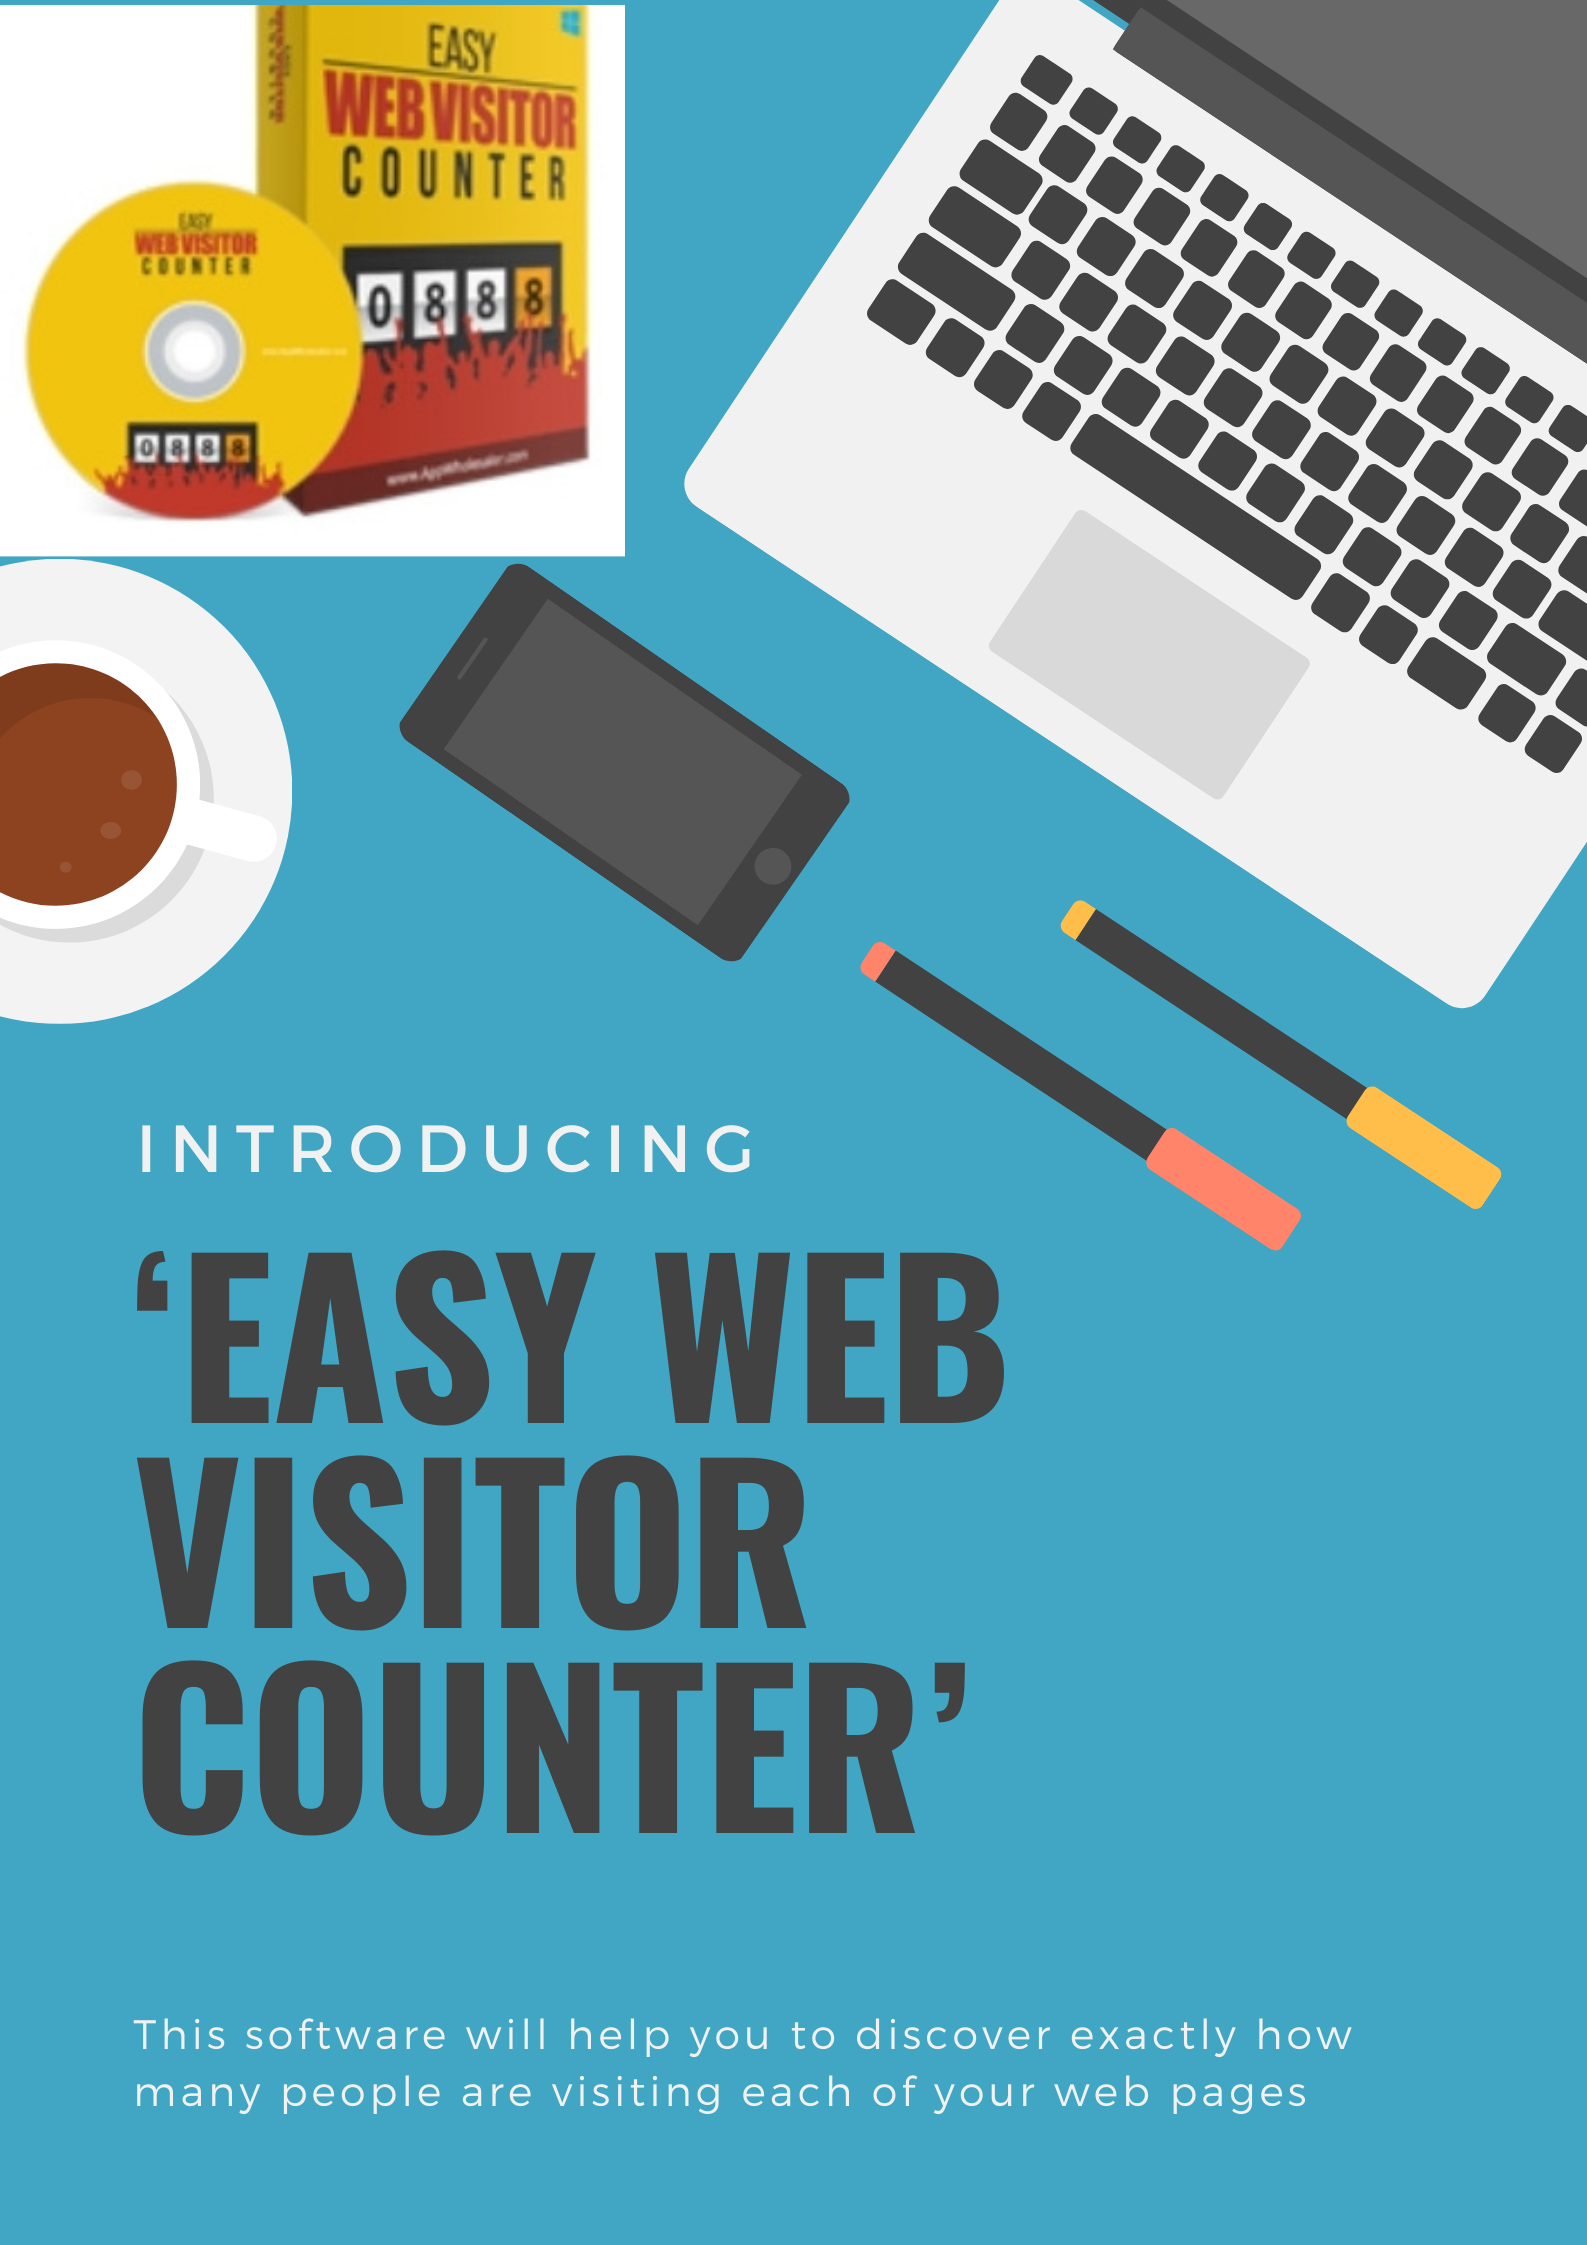 Easy Web visitor counter -Discover how many people are visiting each of your web pages